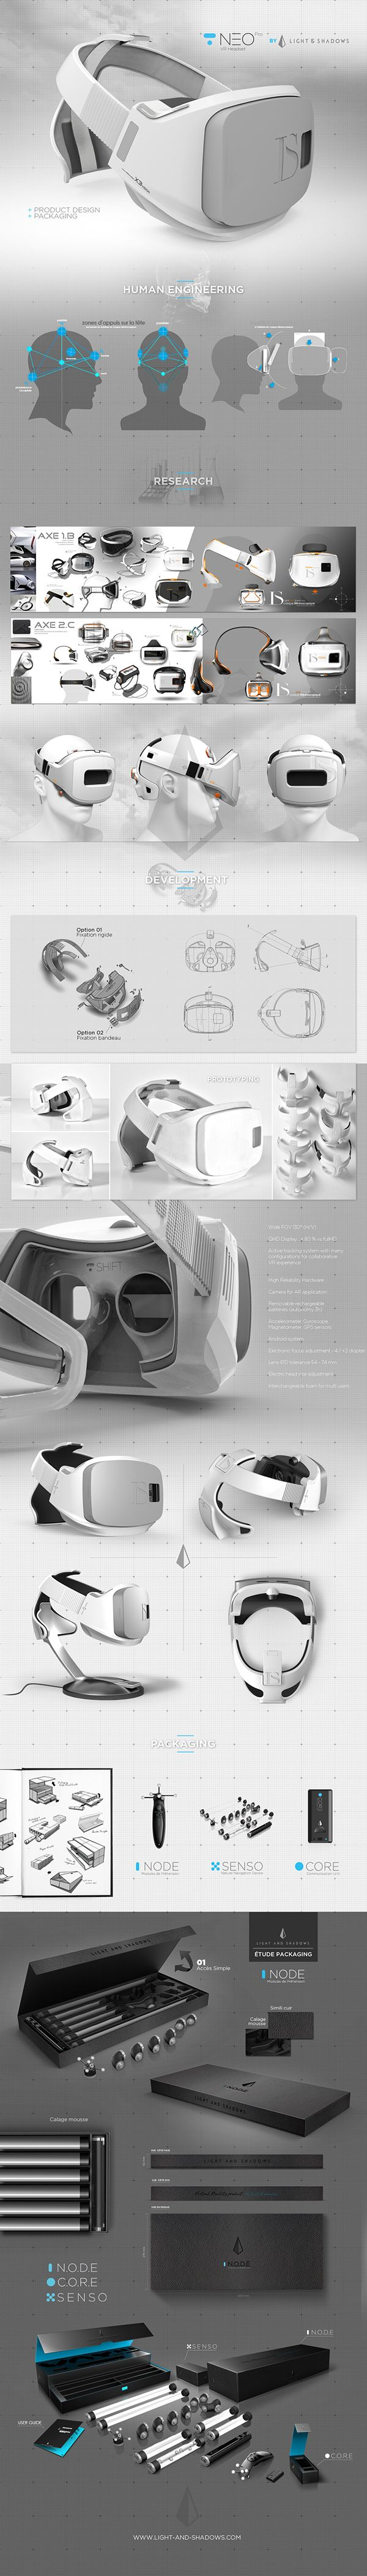 NEOpro by LIGHT & SHADOWS on Behance